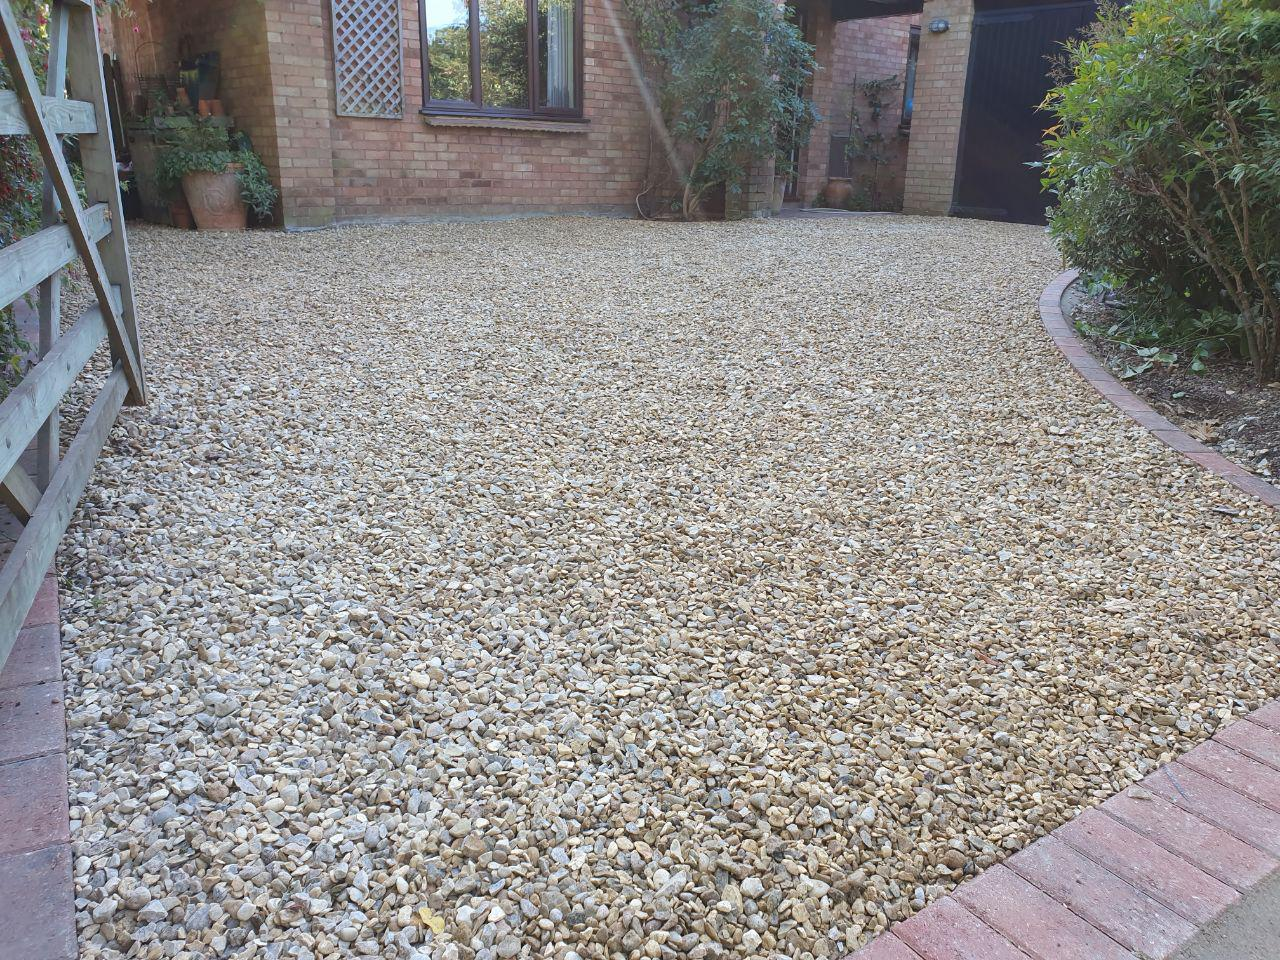 New Driveway With 20mm Cotswold Gravel In Milton Keynes Driveway Patio Experts